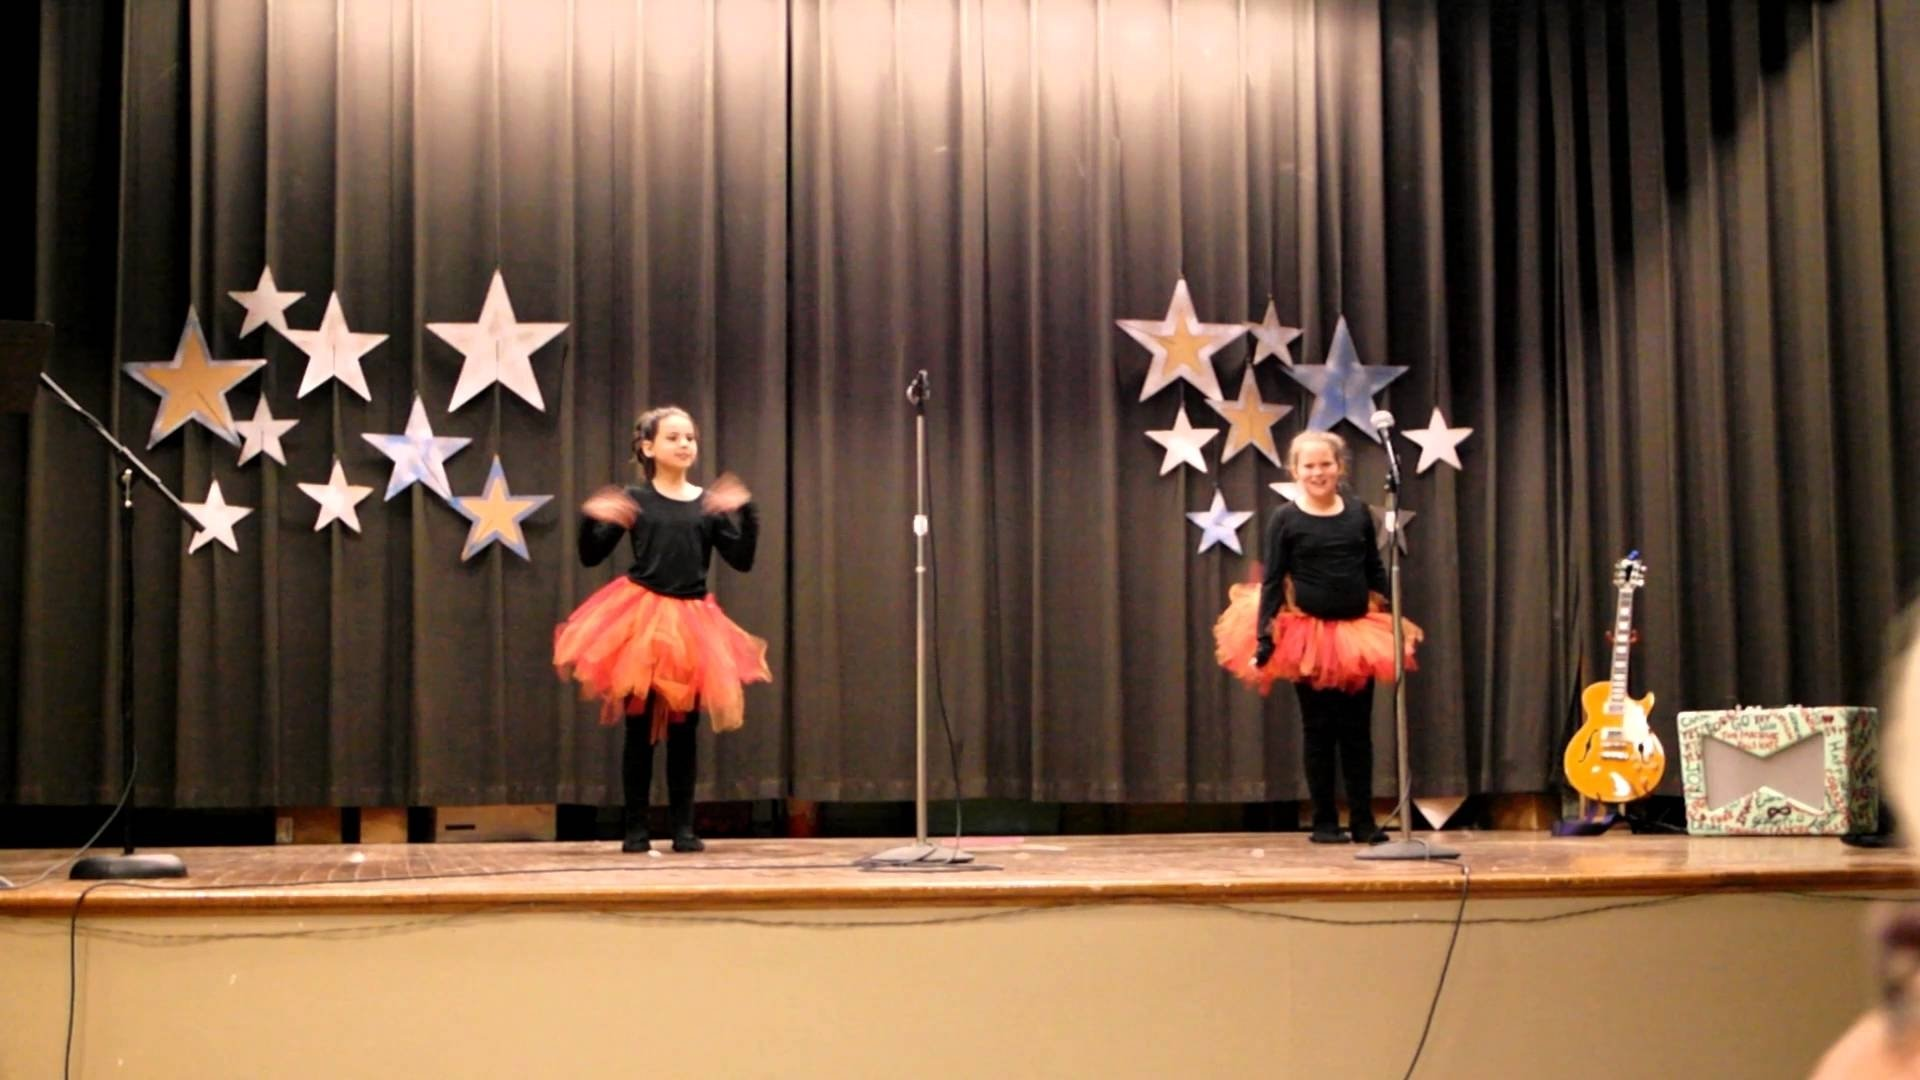 10 Stylish Easy Talent Show Ideas For Kids talent show ideas girl on fire youtube